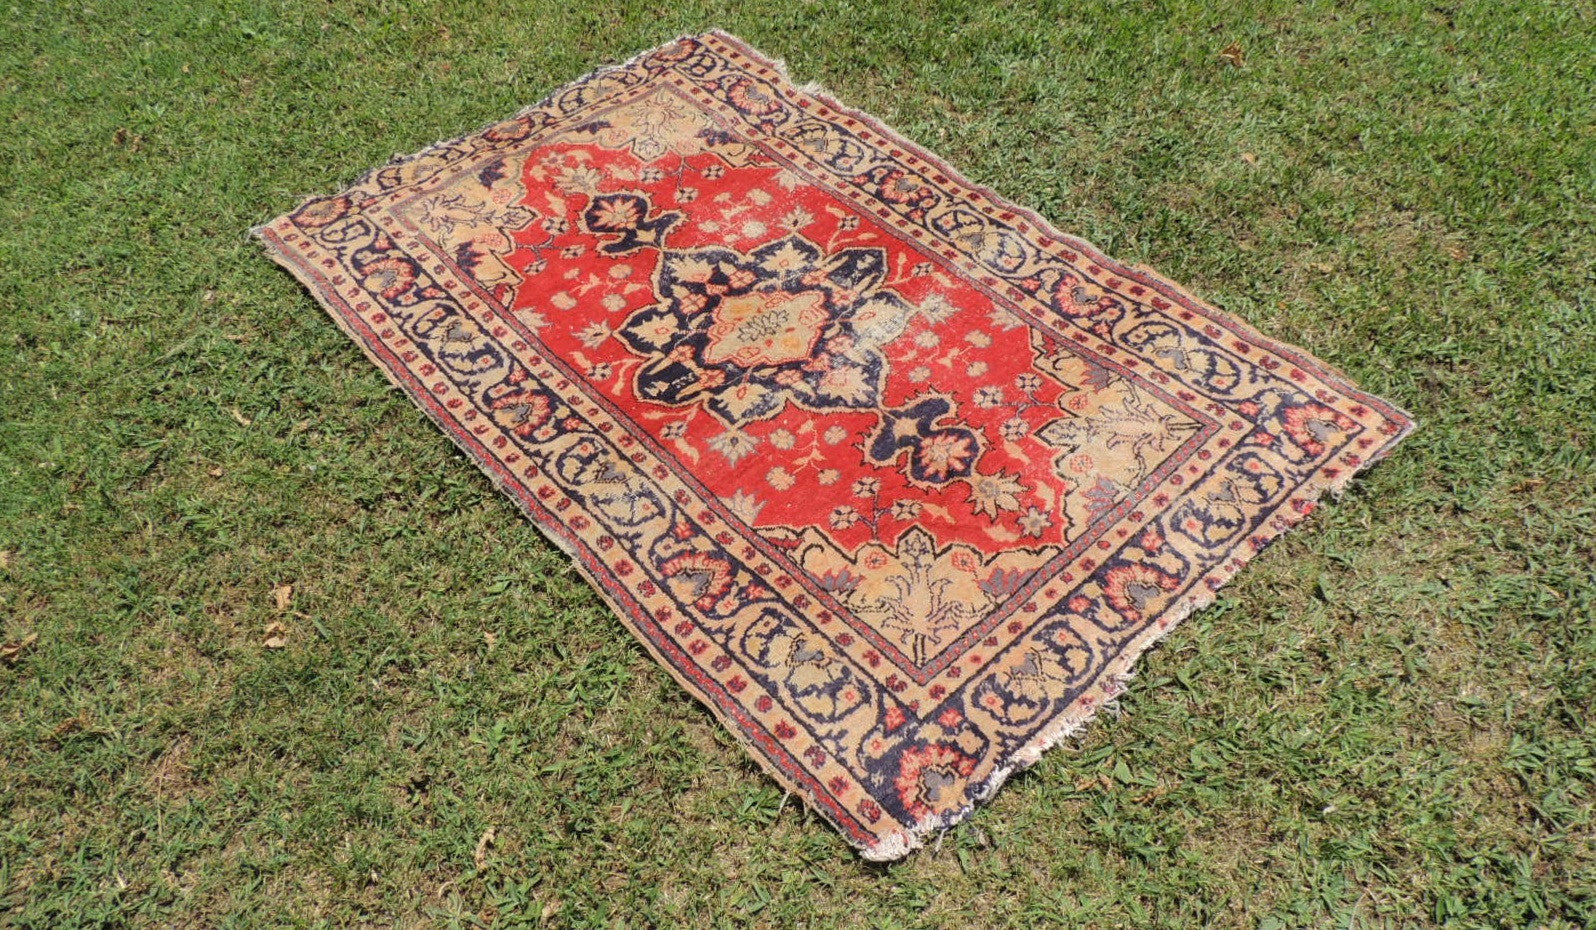 Vintage Worn Turkish Carpet - bosphorusrugs  - 1